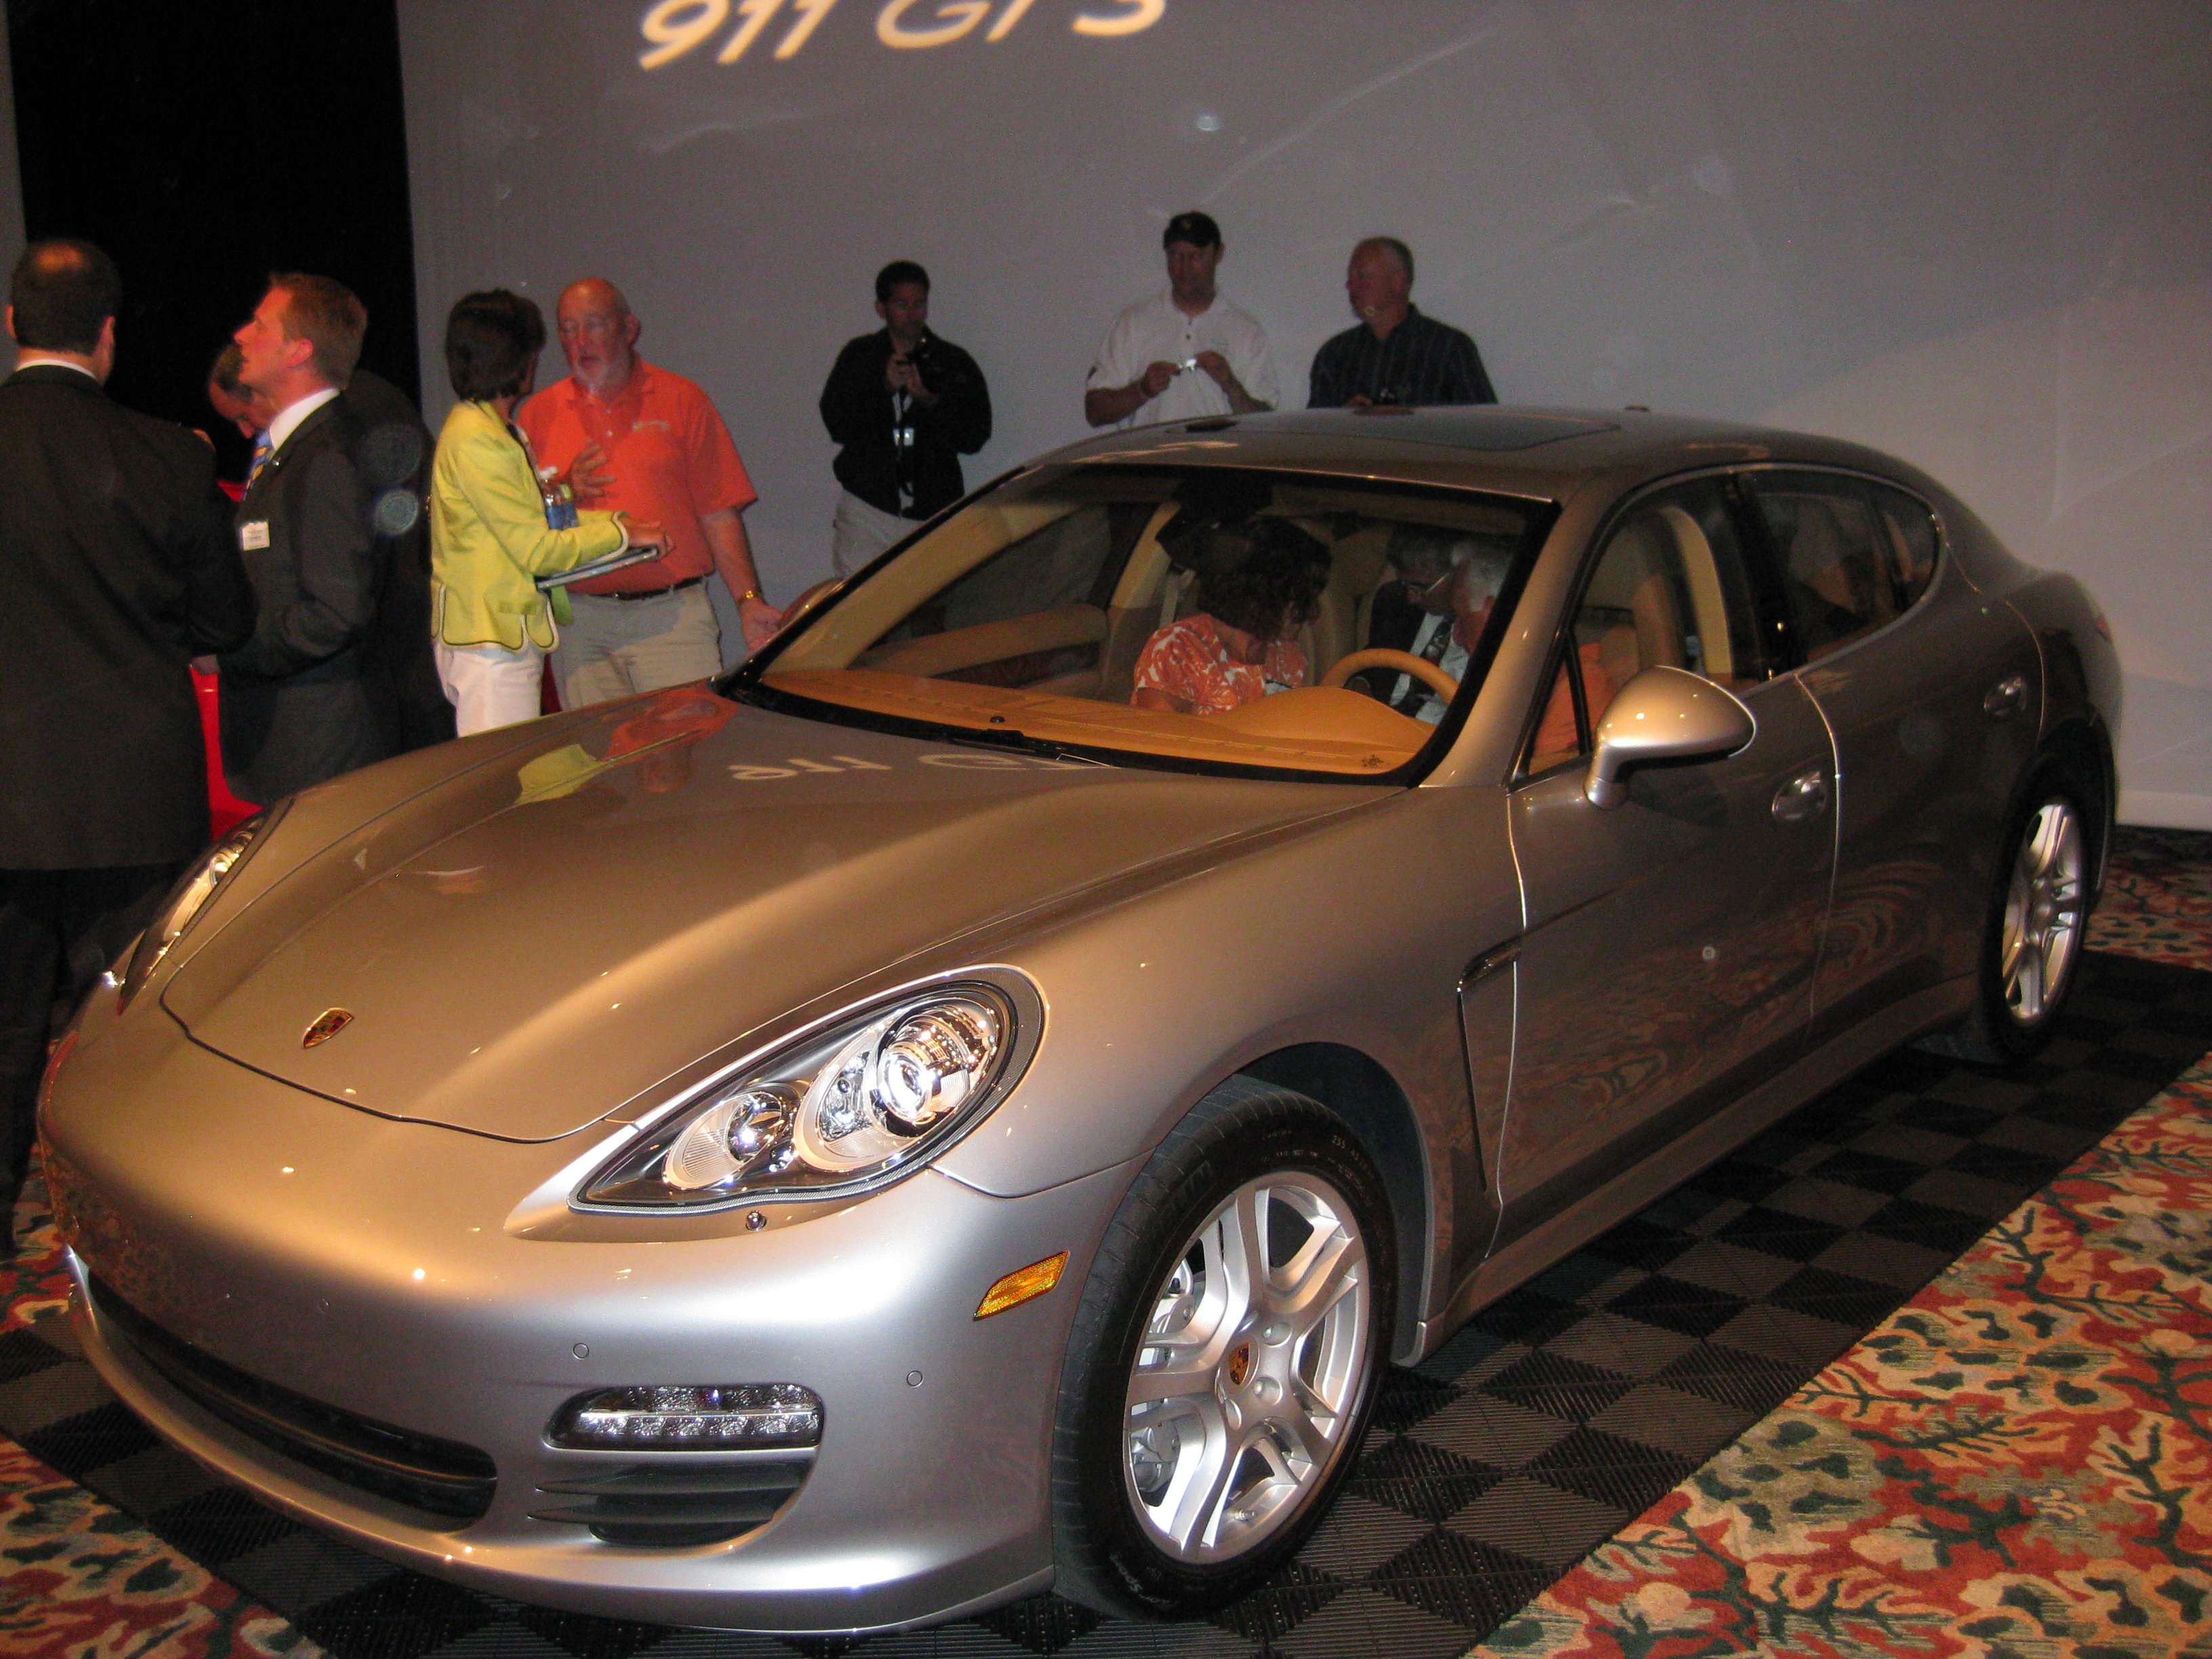 Porsche Panamera Debut at the 2009 PCA Parade